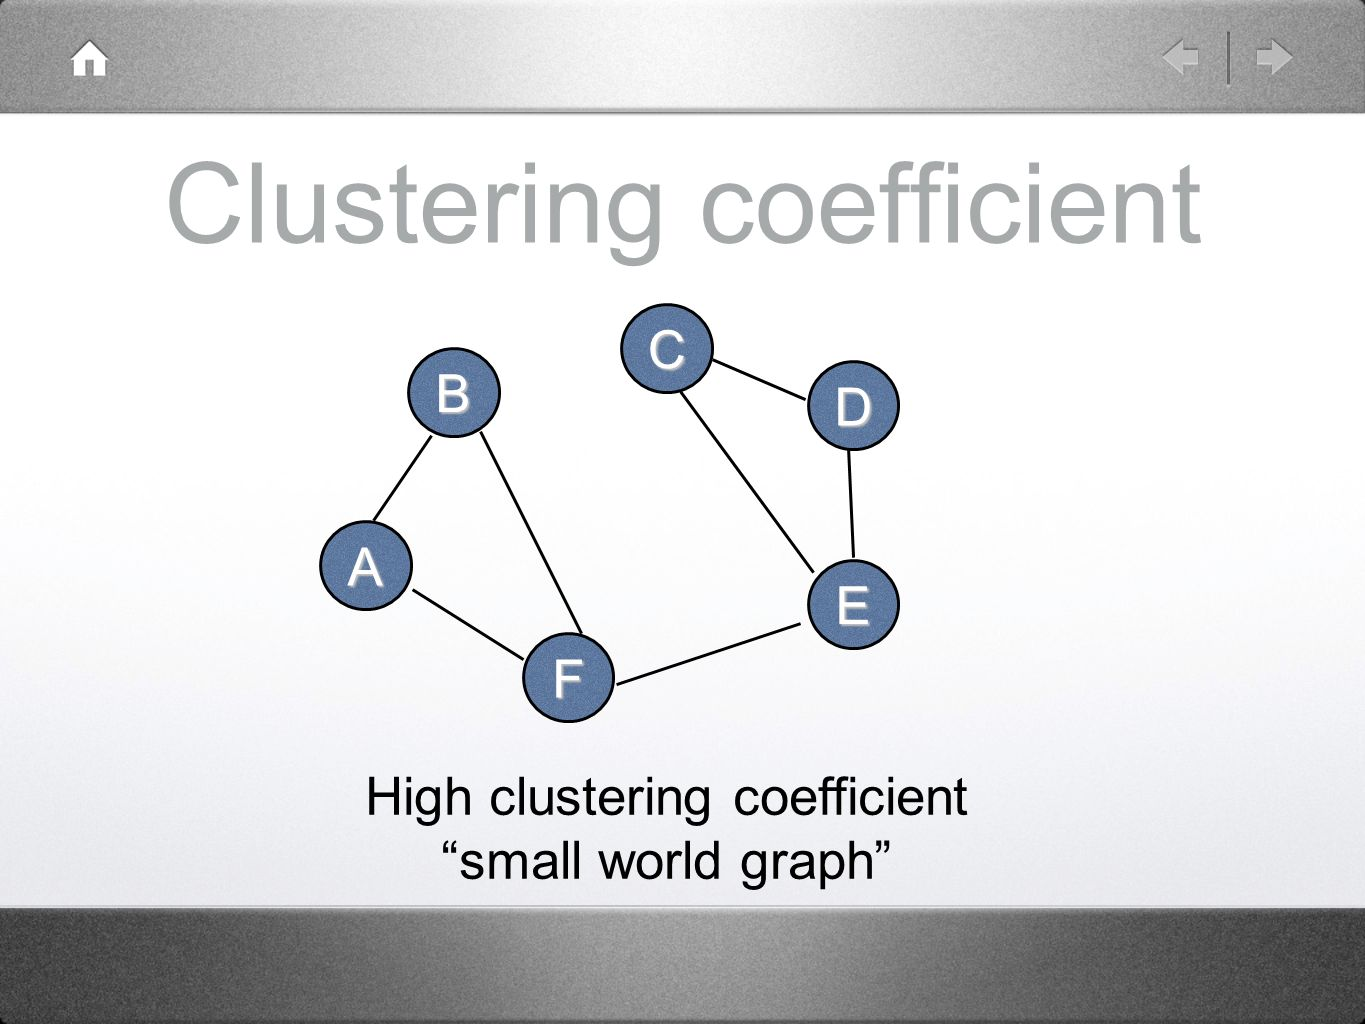 Clustering coefficient A B C D E F High clustering coefficient small world graph